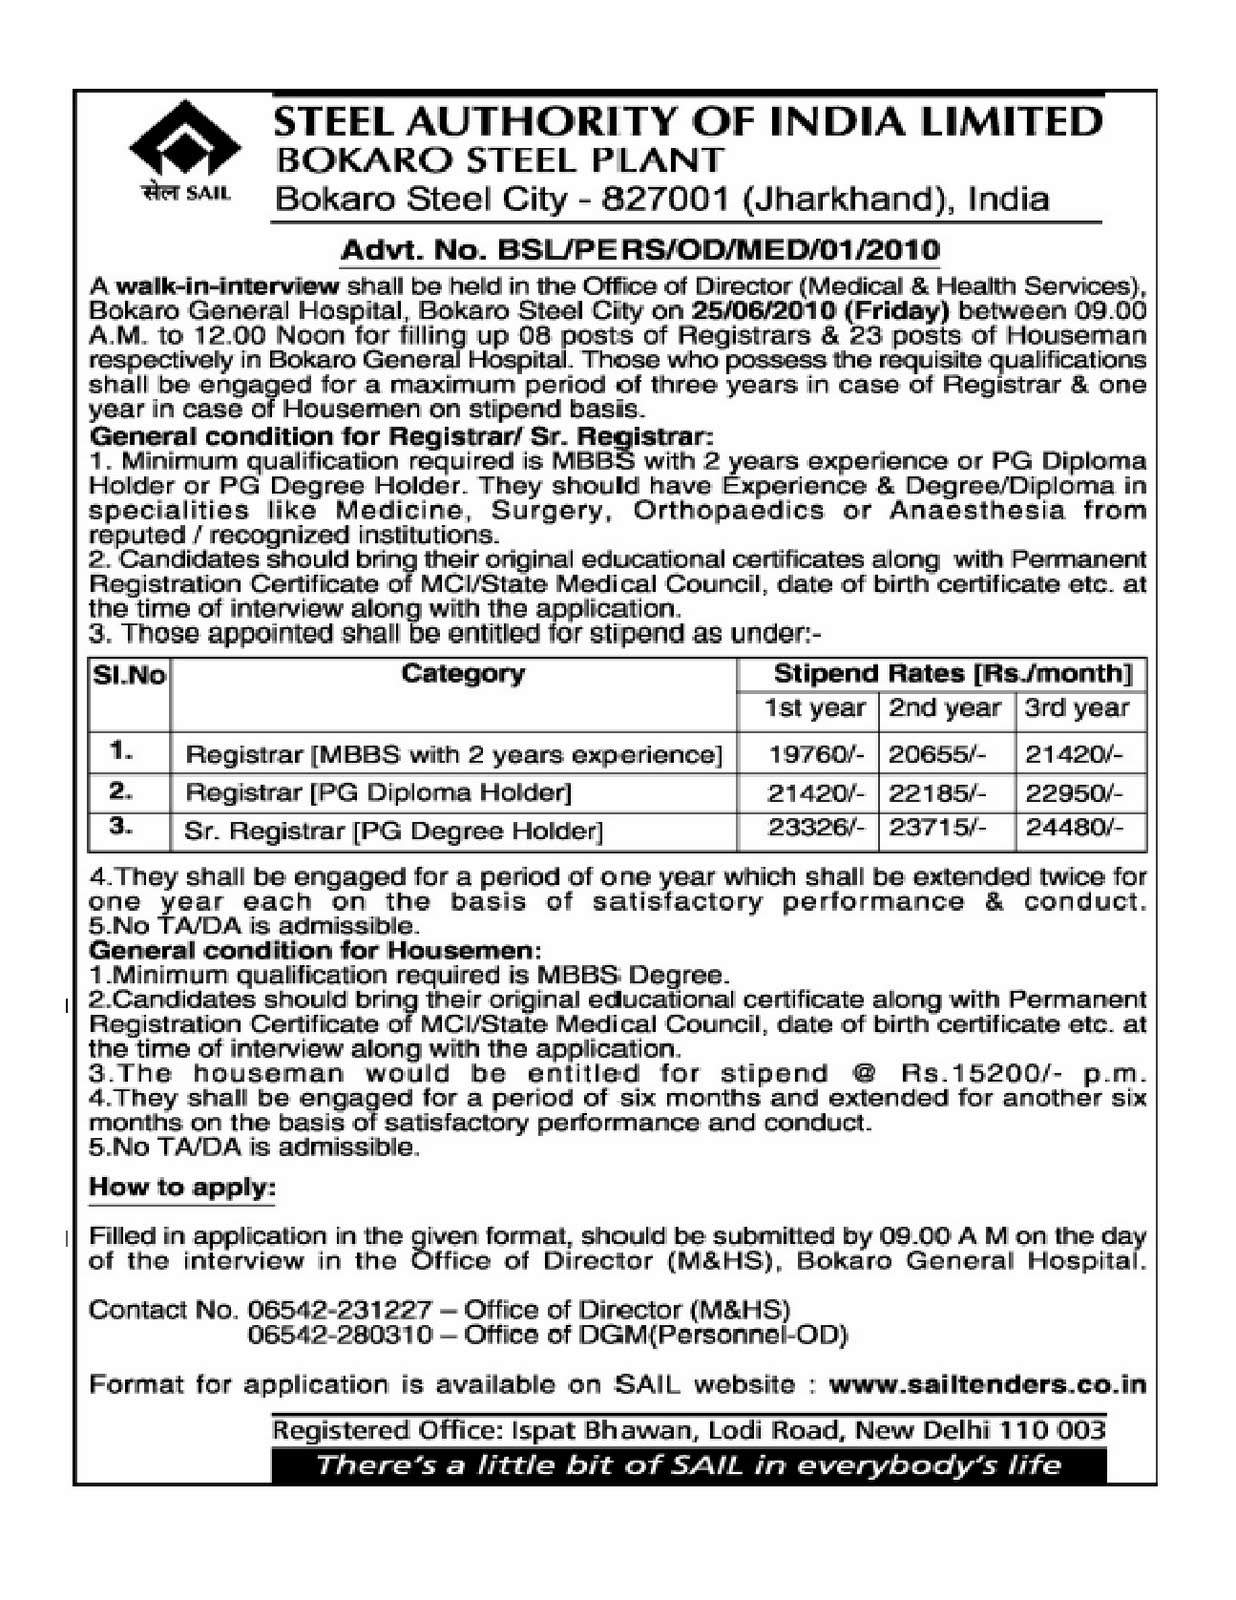 Resume For Btech Cse Student - May & June 2010 - Indian Government Jobs